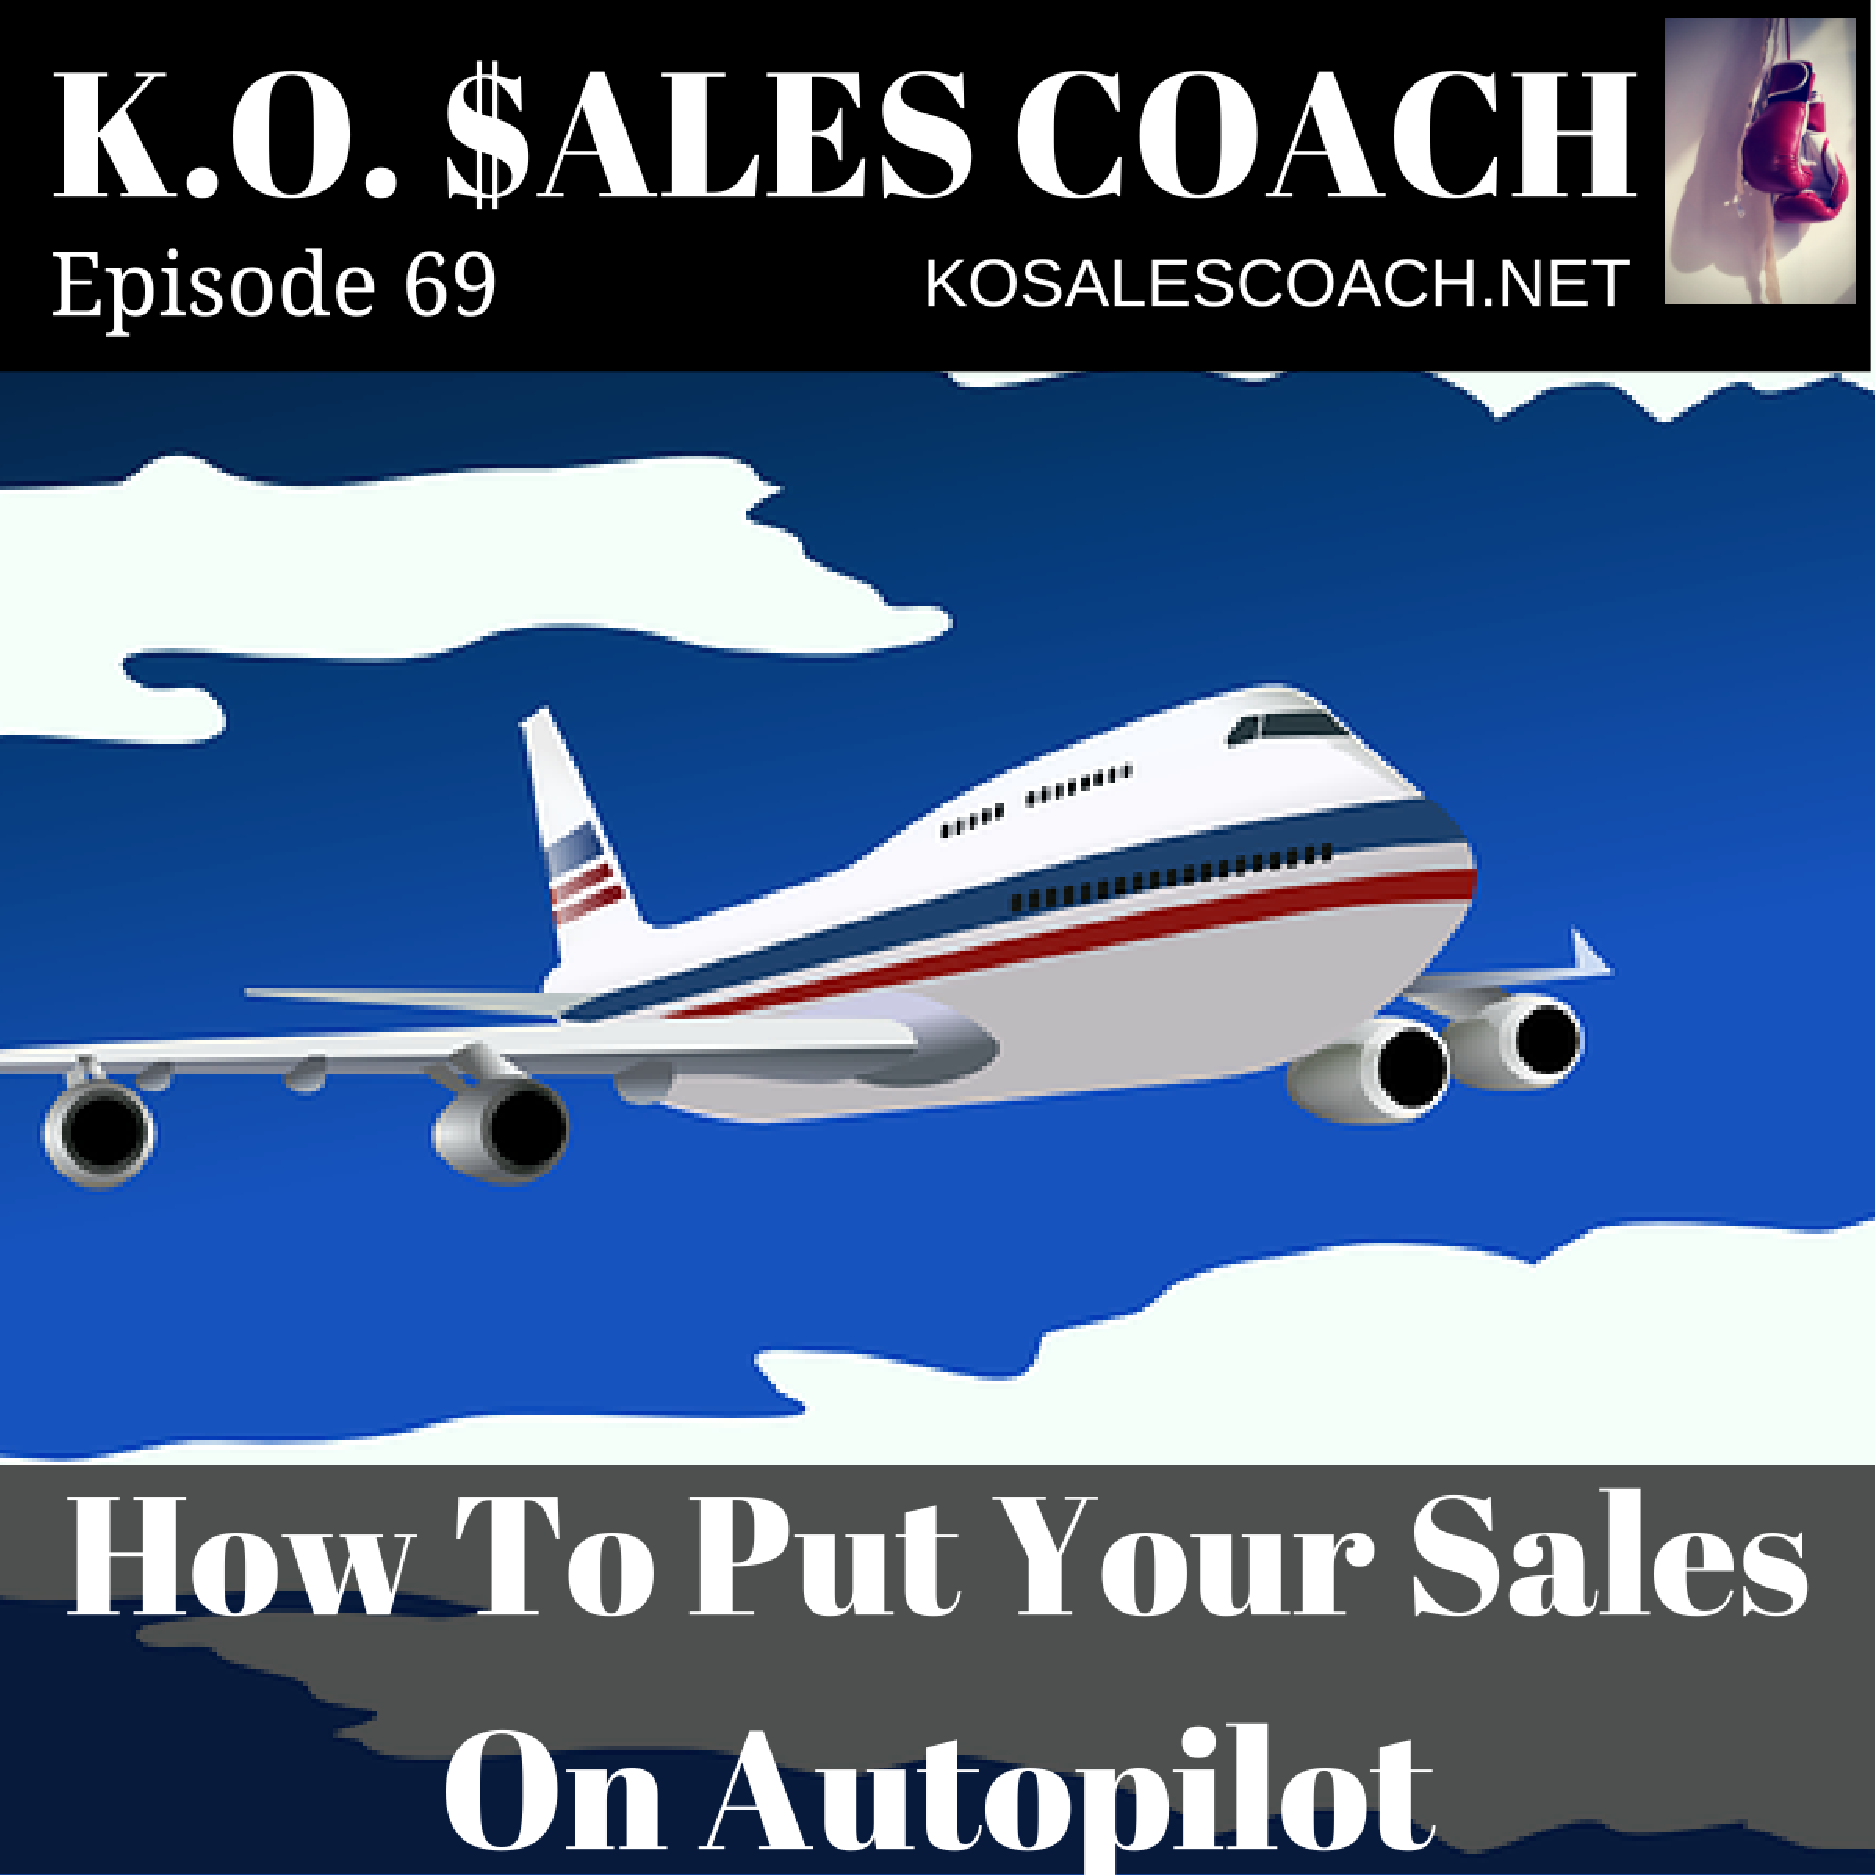 FY21AP Autopilot System Saves FPV RC Model Plane From Being Lost | How